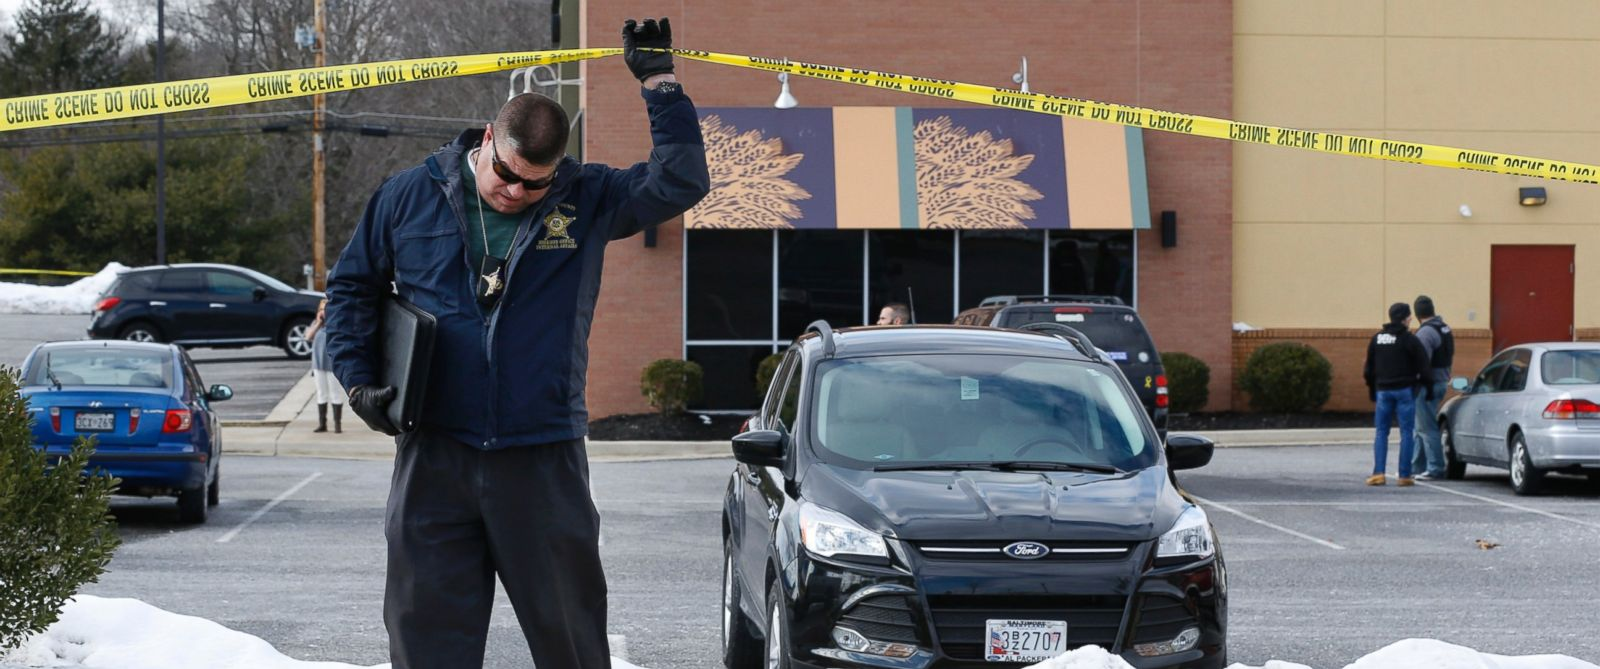 PHOTO: An investigator walks beneath a police tape line at the scene of a shooting at a shopping center in Abingdon, Md., Feb. 10, 2016.